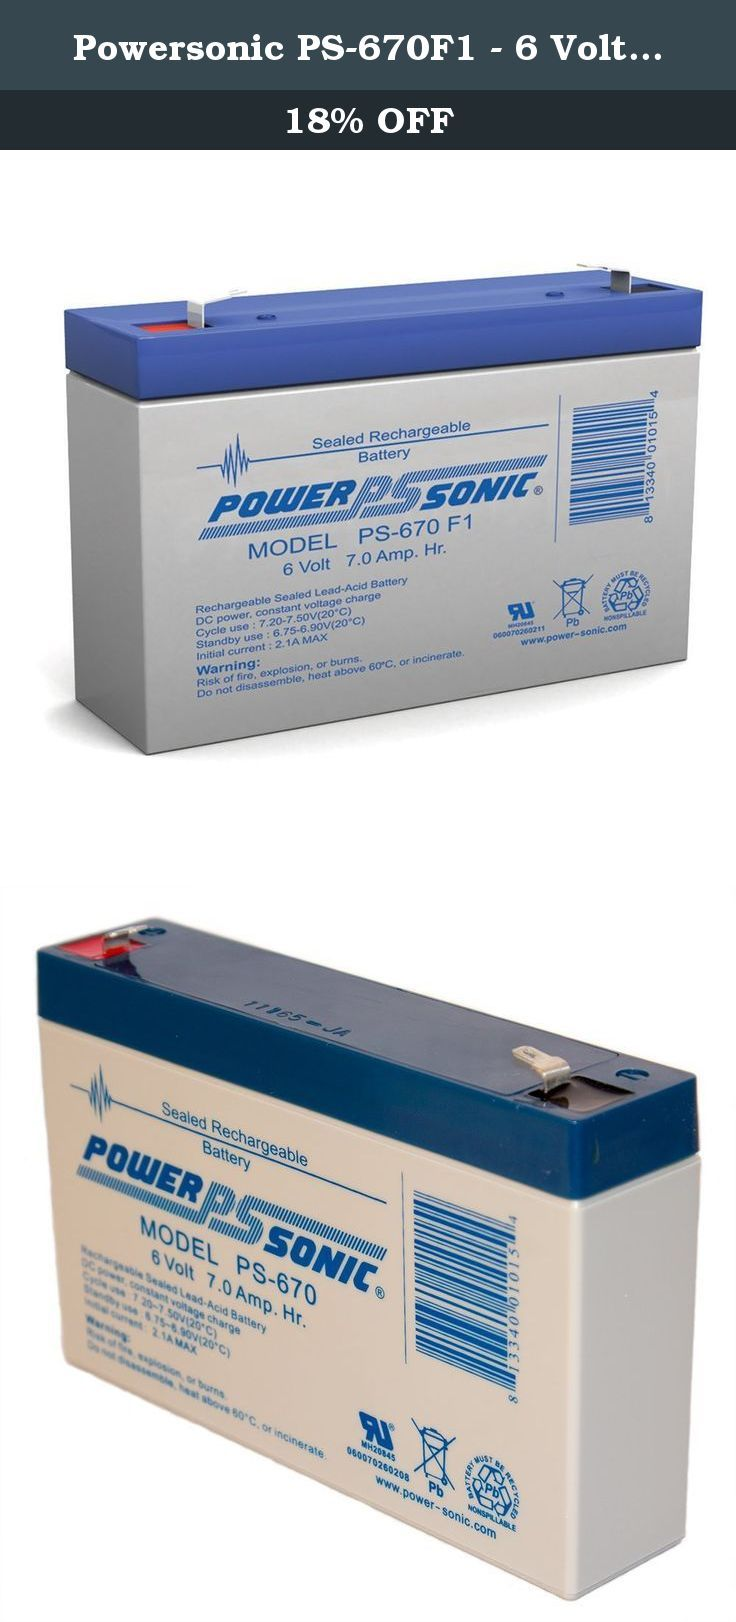 Powersonic PS-670F1 - 6 Volt/7 Amp Hour Sealed Lead Acid Battery with 0.187 Fast-on Connector. High-quality sealed lead acid (SLA) batteries from Power-Sonic provide excellent value for uses including computer UPS systems, alarm back-up, garden tractors, children's vehicles, and many more. The PS-670 has a rated output of 6V, 7Ah.